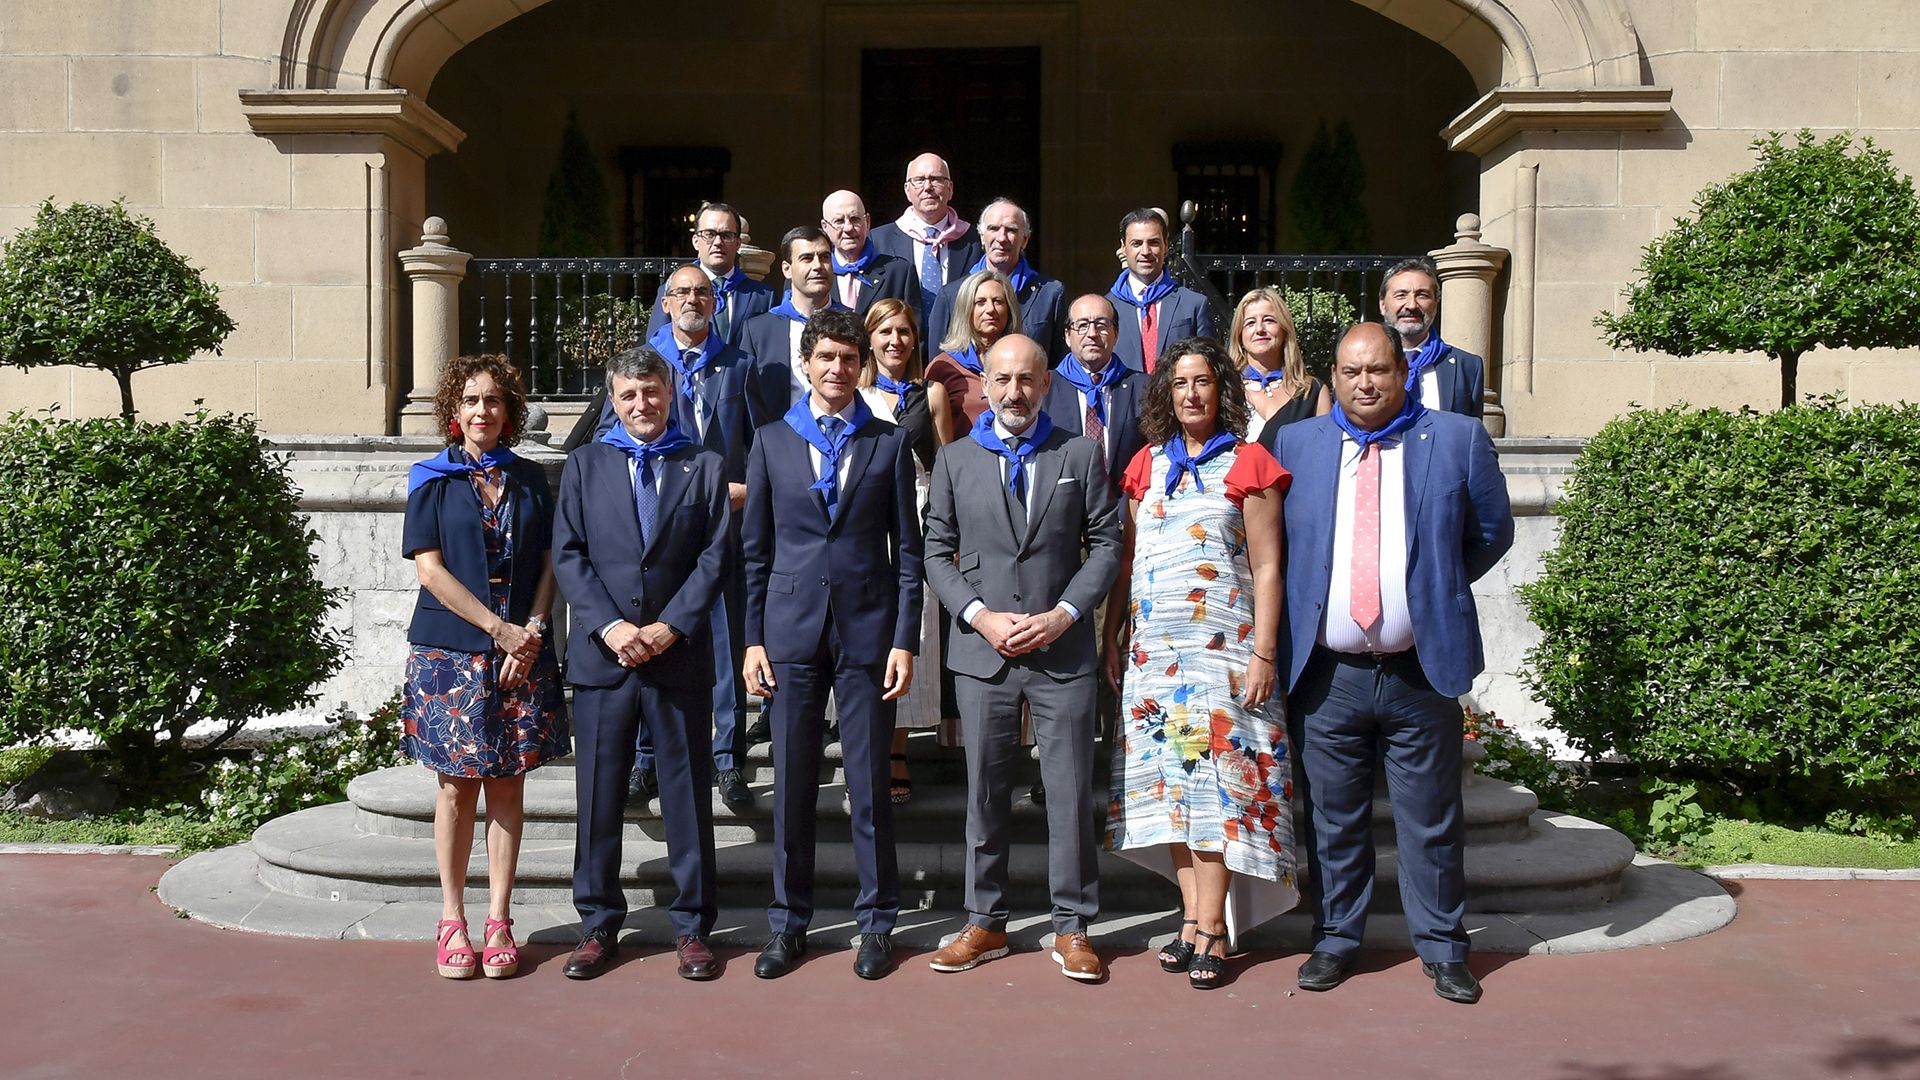 Welcome to the Provincial Council of Biscay